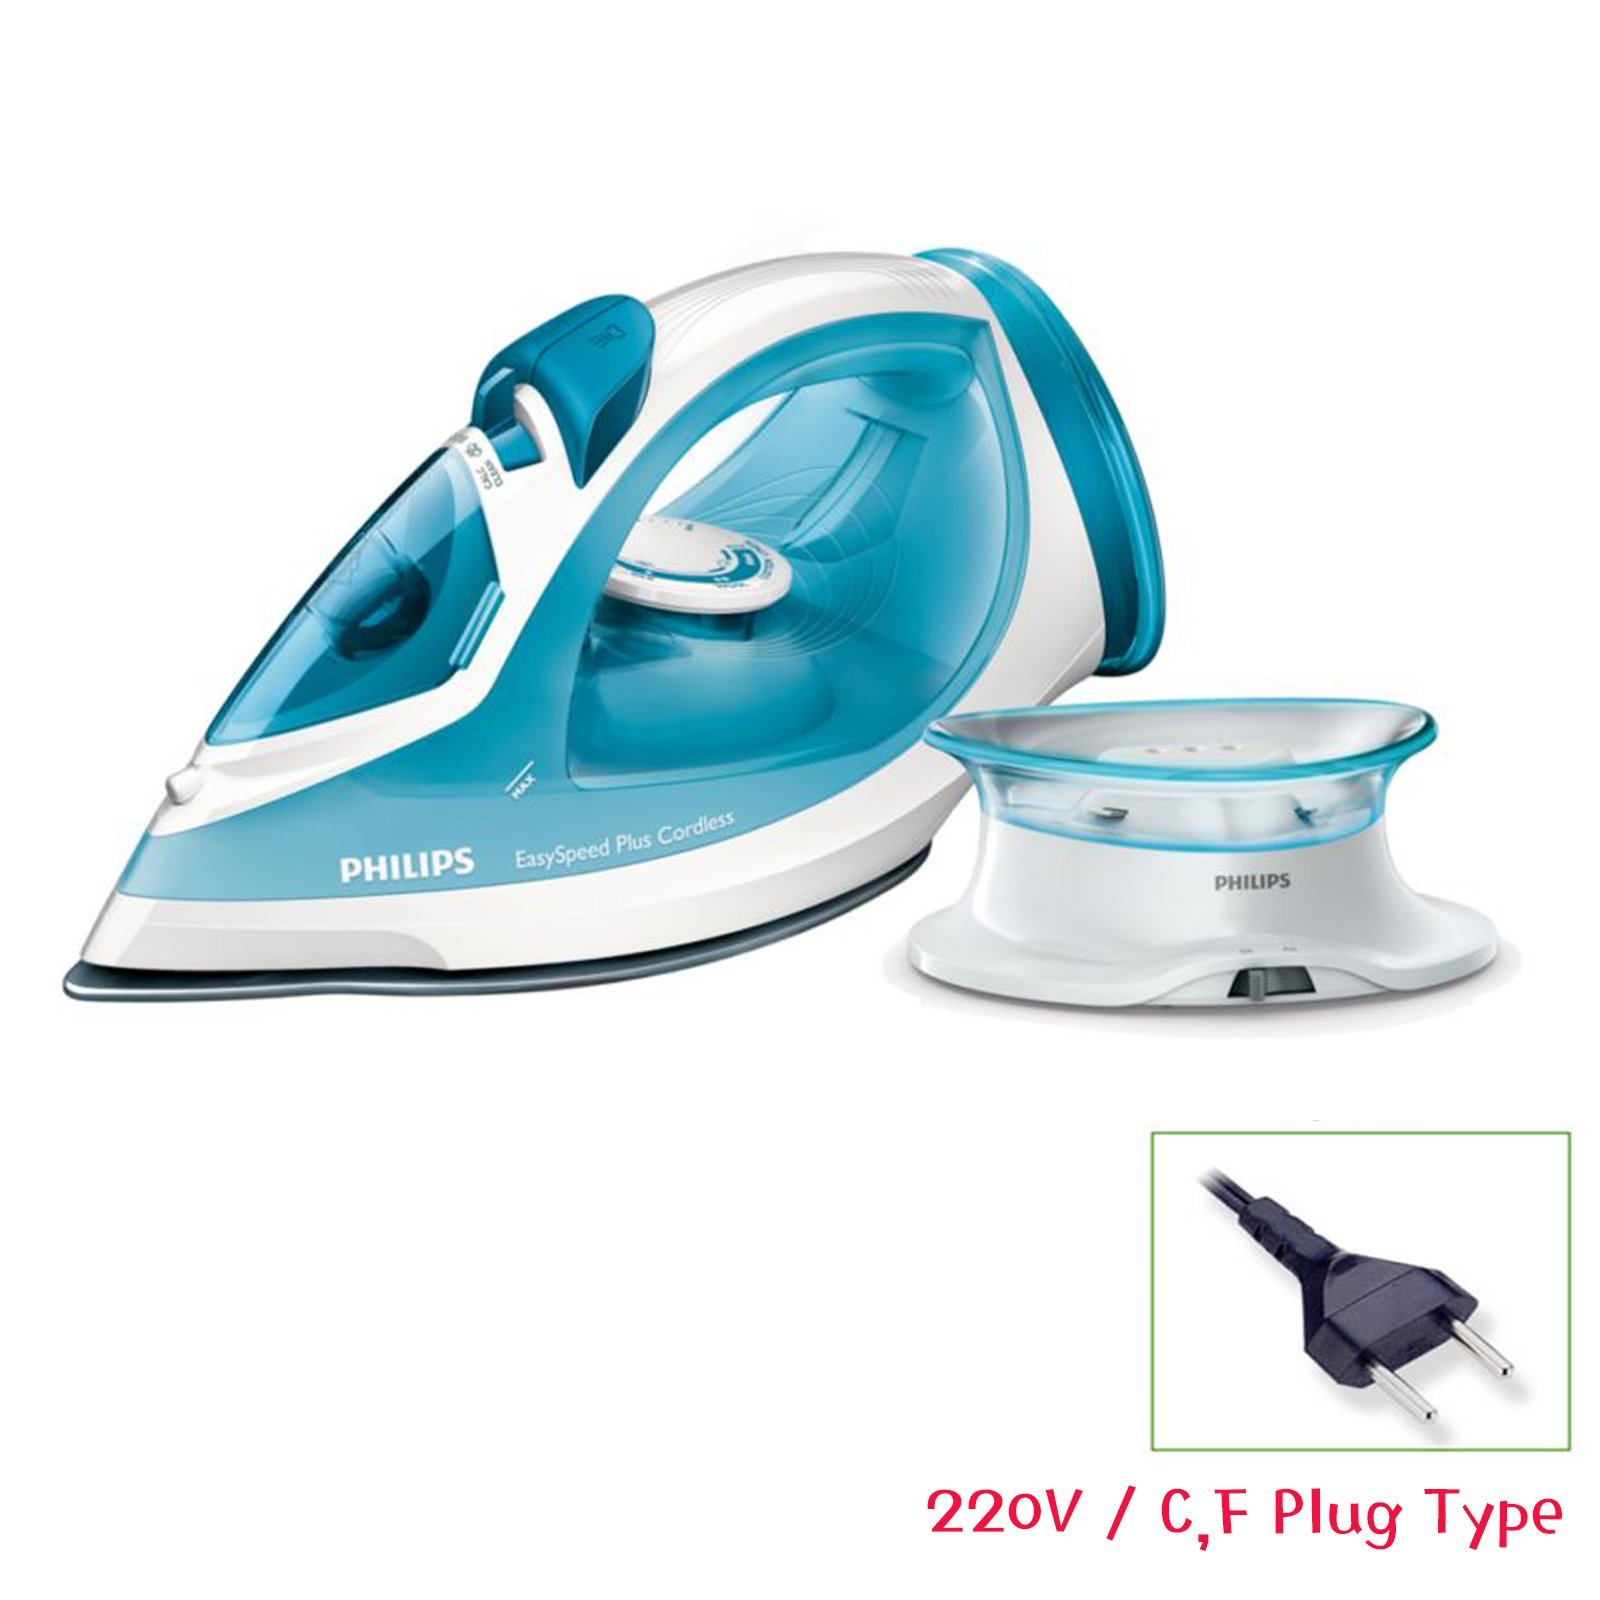 Philips GC2080/28 Easyspeed Plus Cordless Steam Iron 1800W 220V Compact Charging